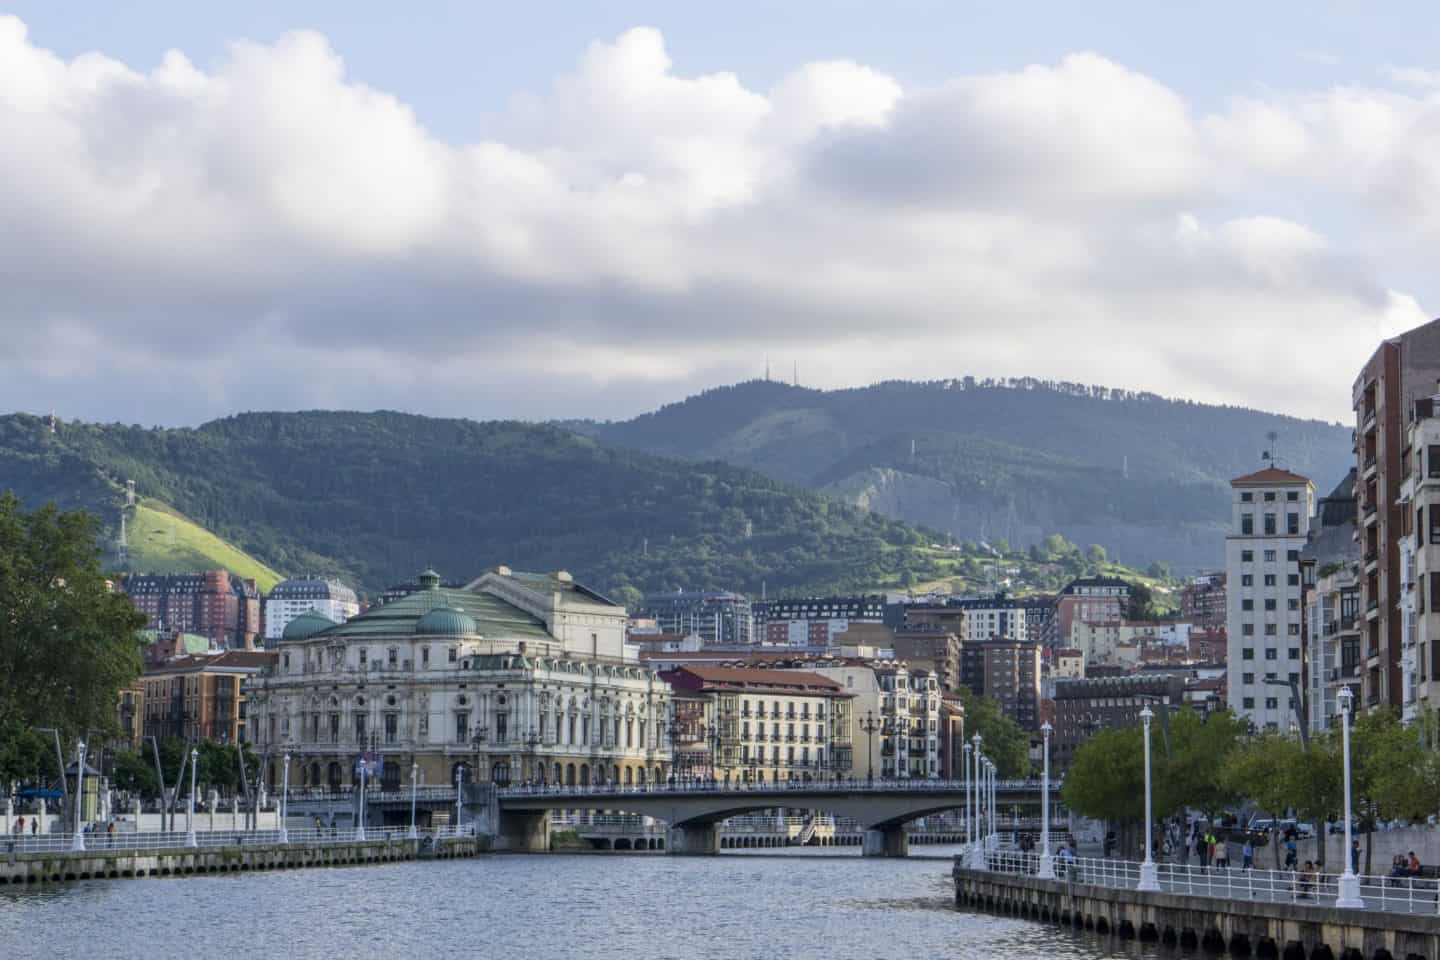 Bilbao skyline - 7 things you must do in Bilbao and La Rioja